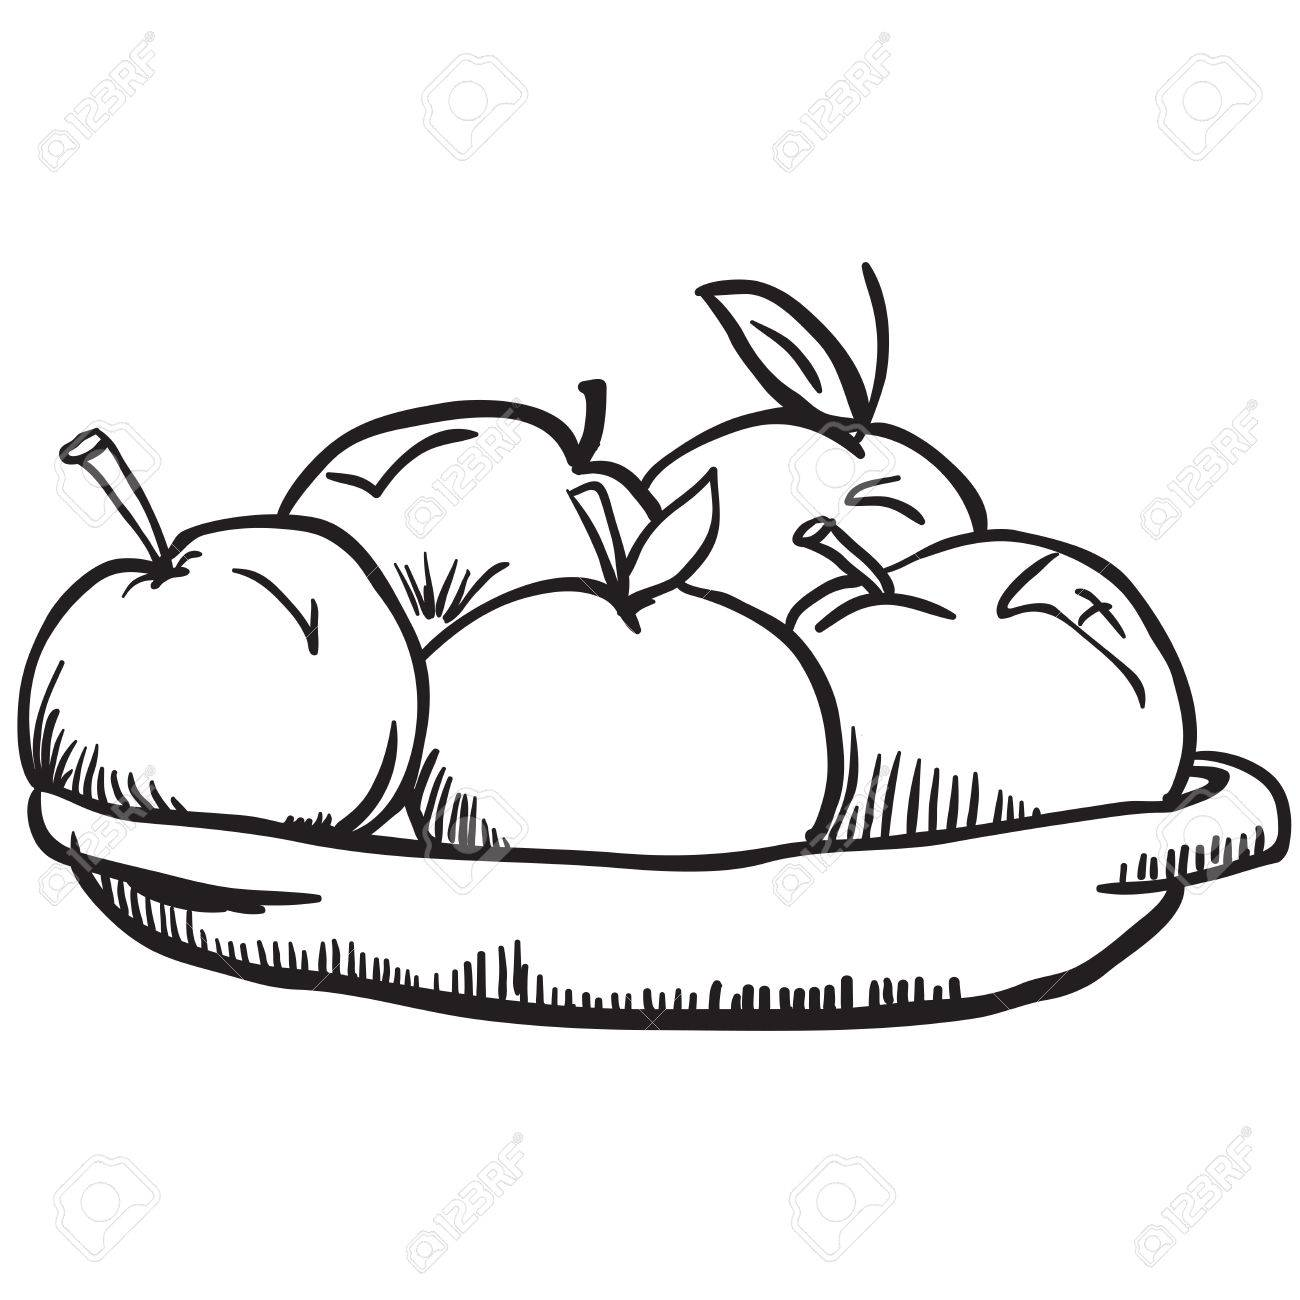 simple black and white apples cartoon.